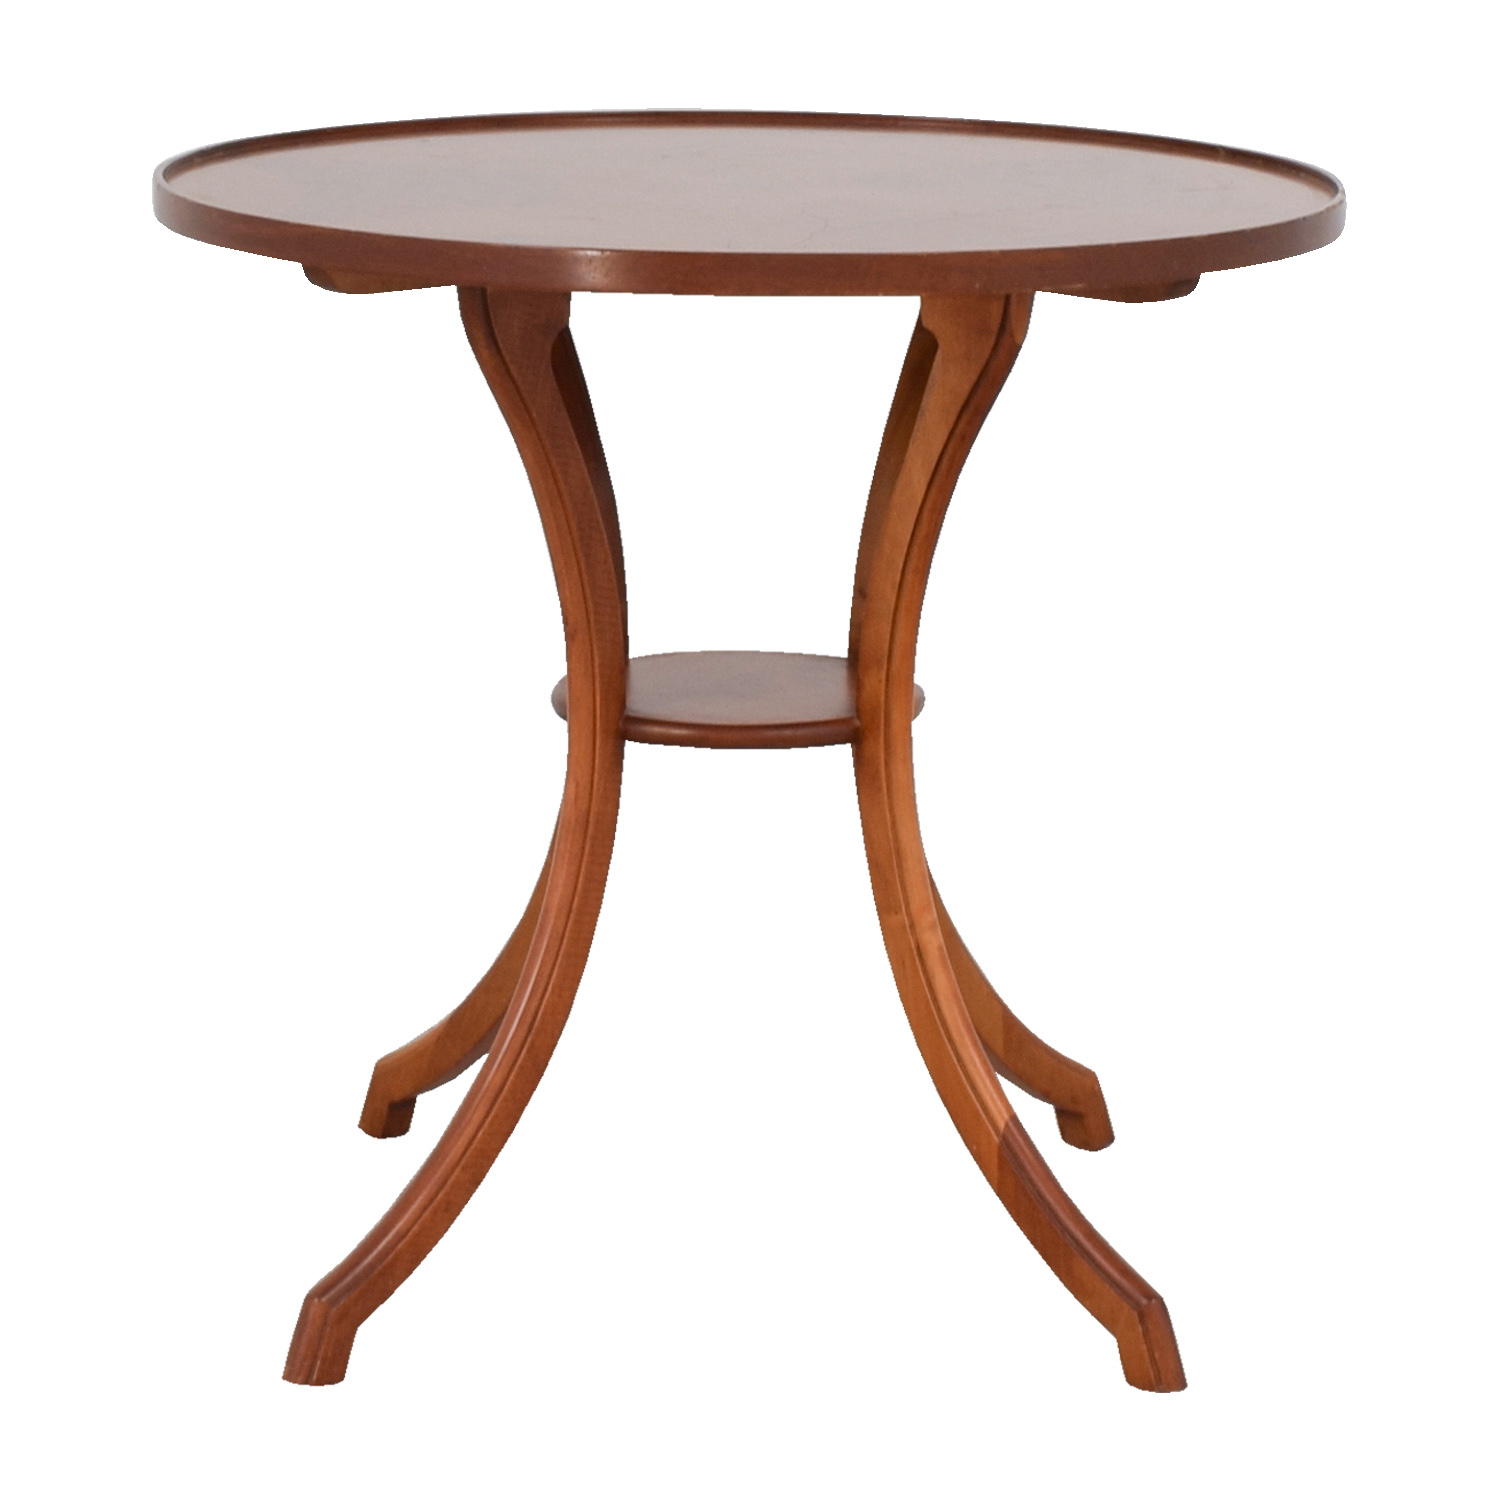 off furniture masters round wood accent table woodworking end black filing cabinet sango dishes ikea living room tables tall bedside lamps steamer trunk lamp and combo glass